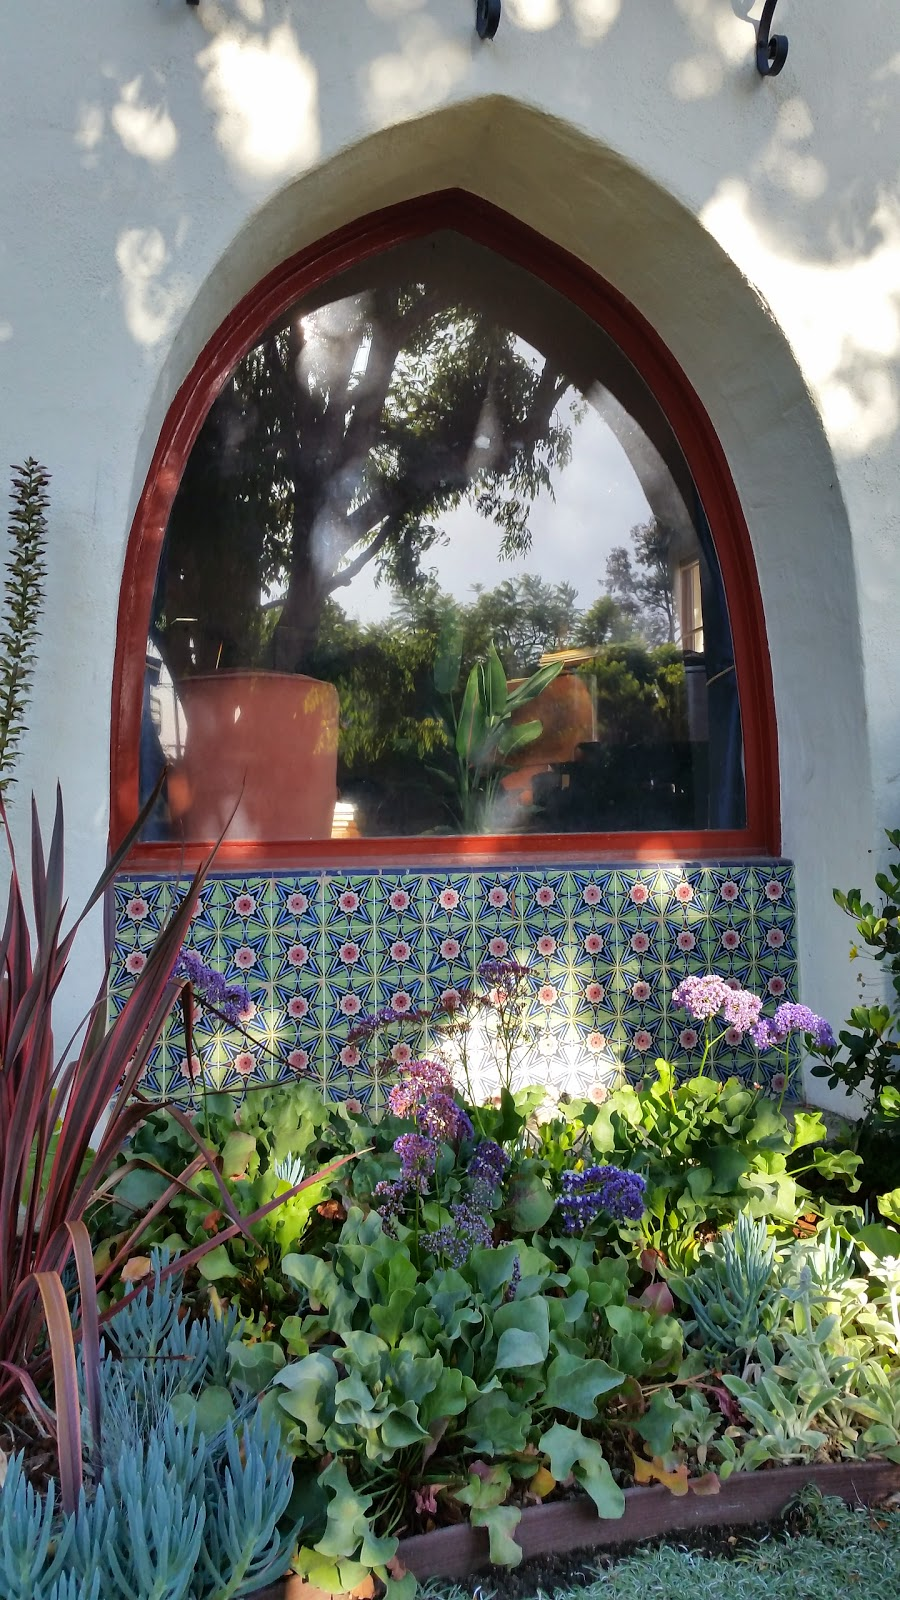 These brightly colored tiles are grouped beneath a Moorish arch to create a colorful tribute to Spanish Revival Architecture